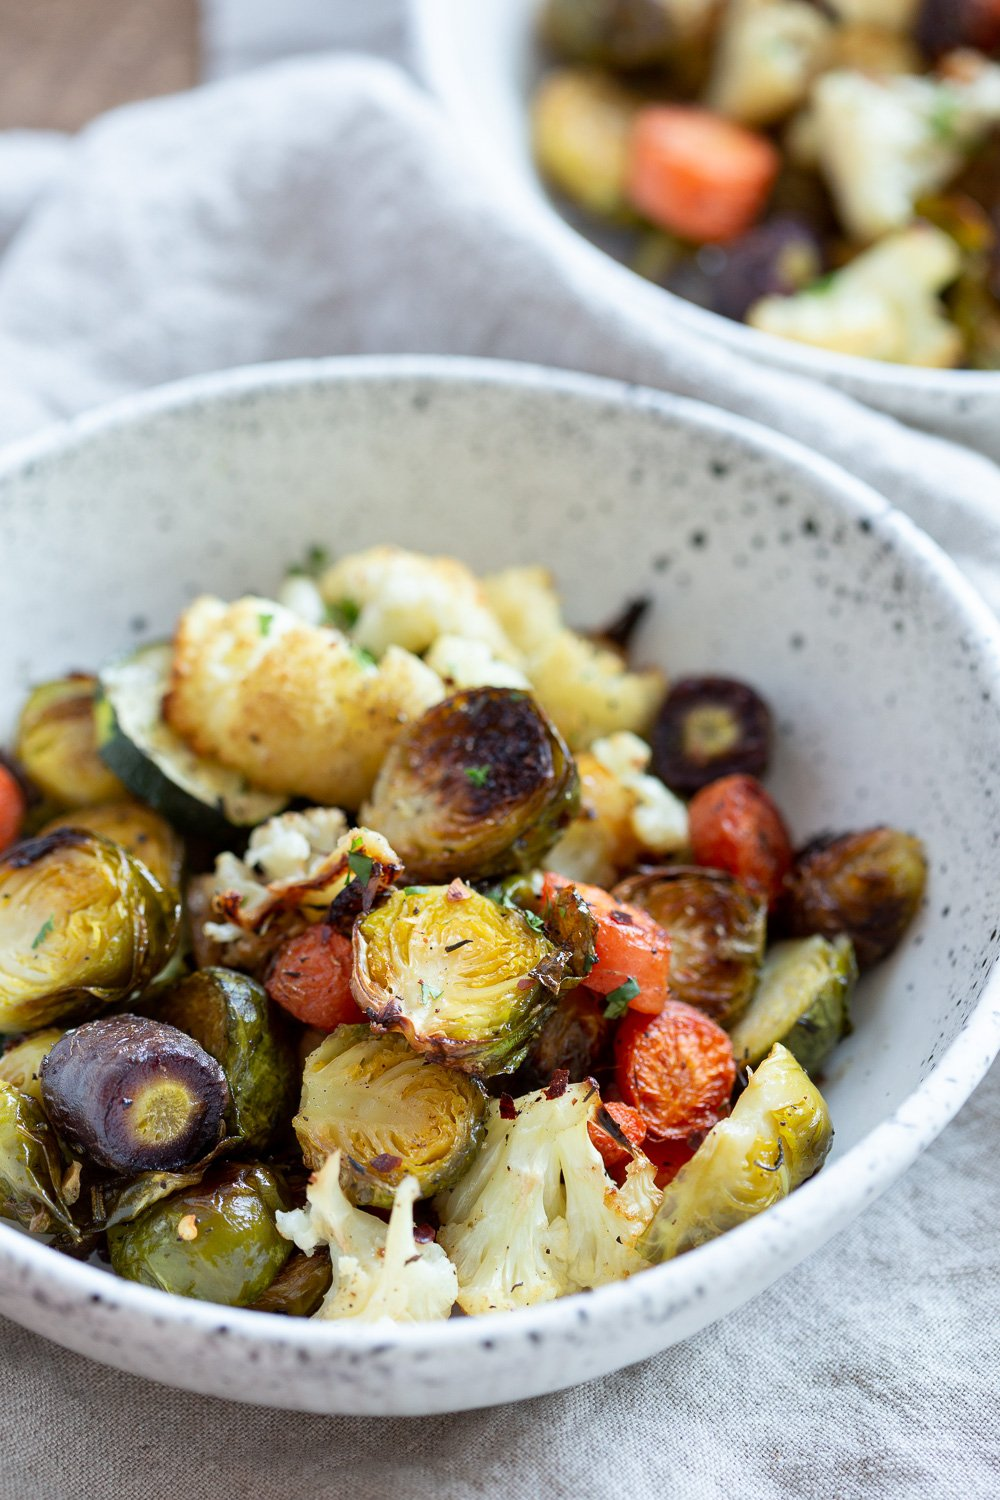 Roasted Brussels Sprouts and Cauliflower with fresh herbs and black pepper. Tips on how to roast veggies that are perfectly crisp, vibrant, flavorful, not-dry or chewy. Roasted Veggies Bowl.#Vegan #Glutenfree Nutfree Soyfree #Recipe #VeganRicha